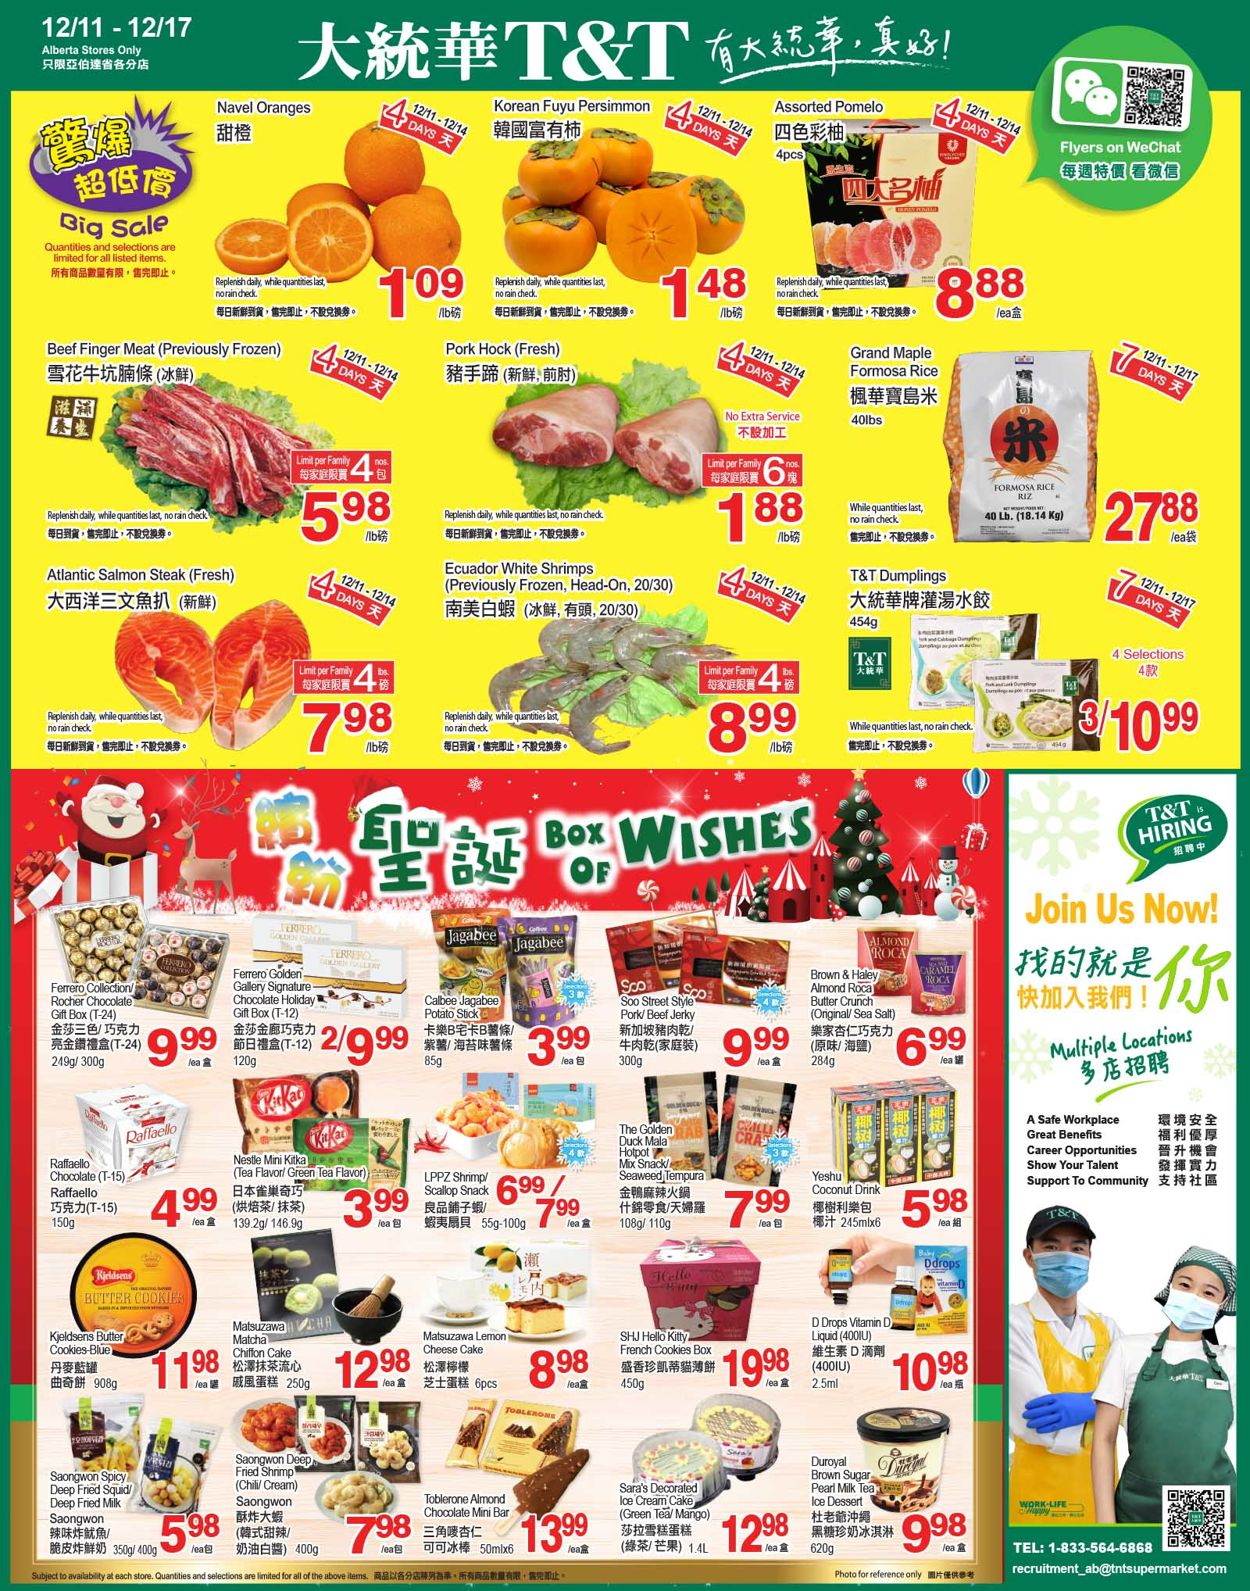 T&T Supermarket Christmas 2020 - Alberta Flyer - 12/11-12/17/2020